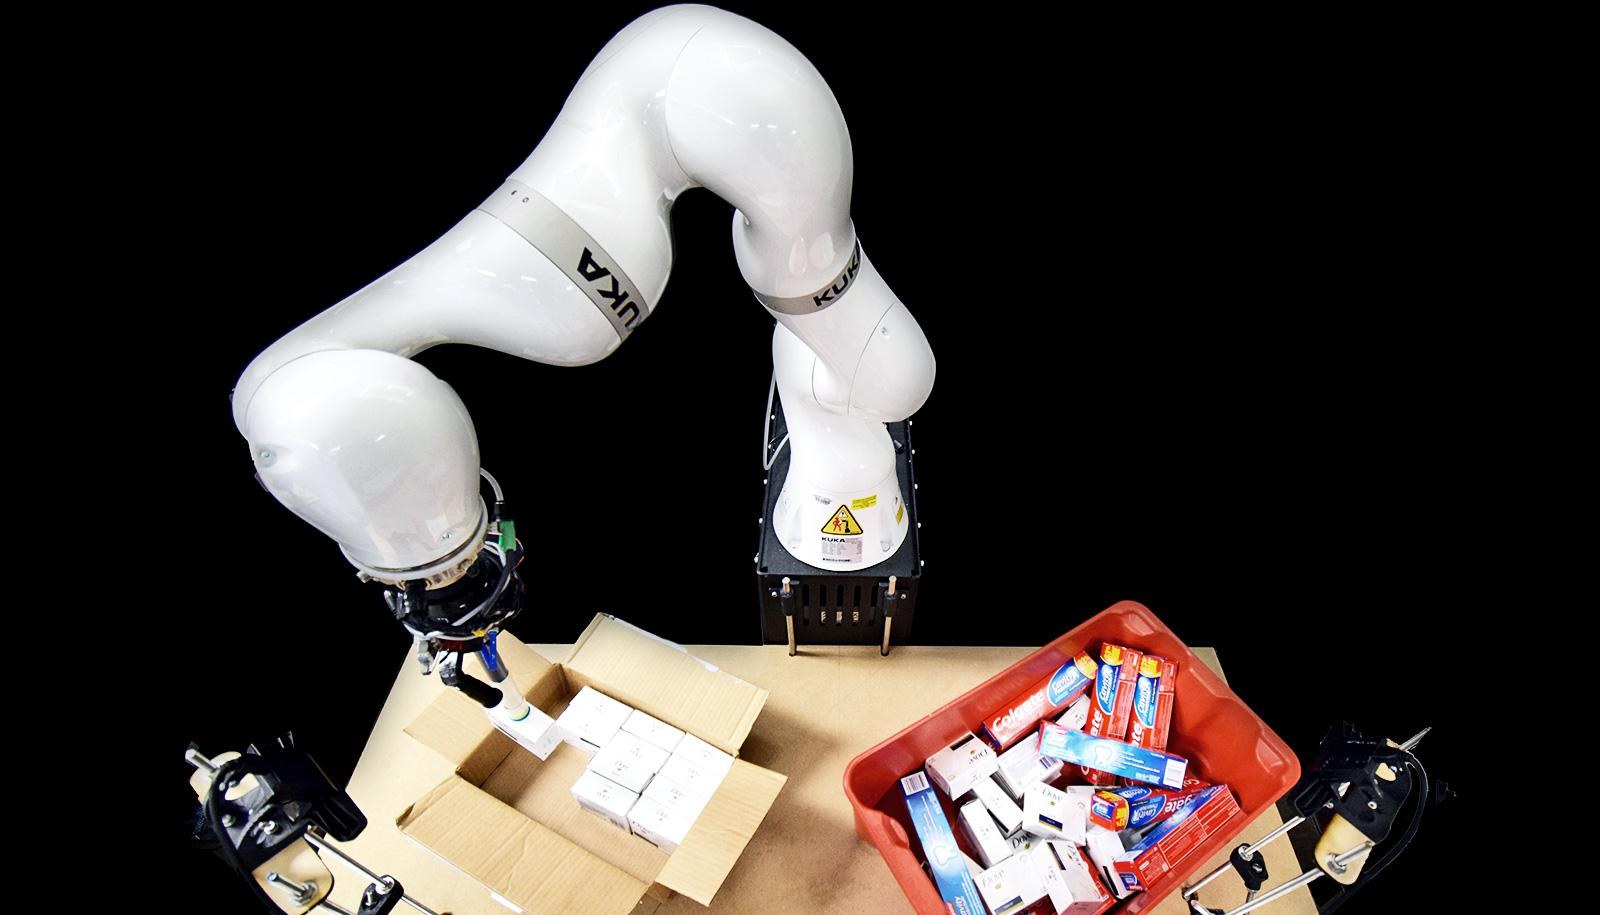 robotic arm packs boxes with artificial intelligence